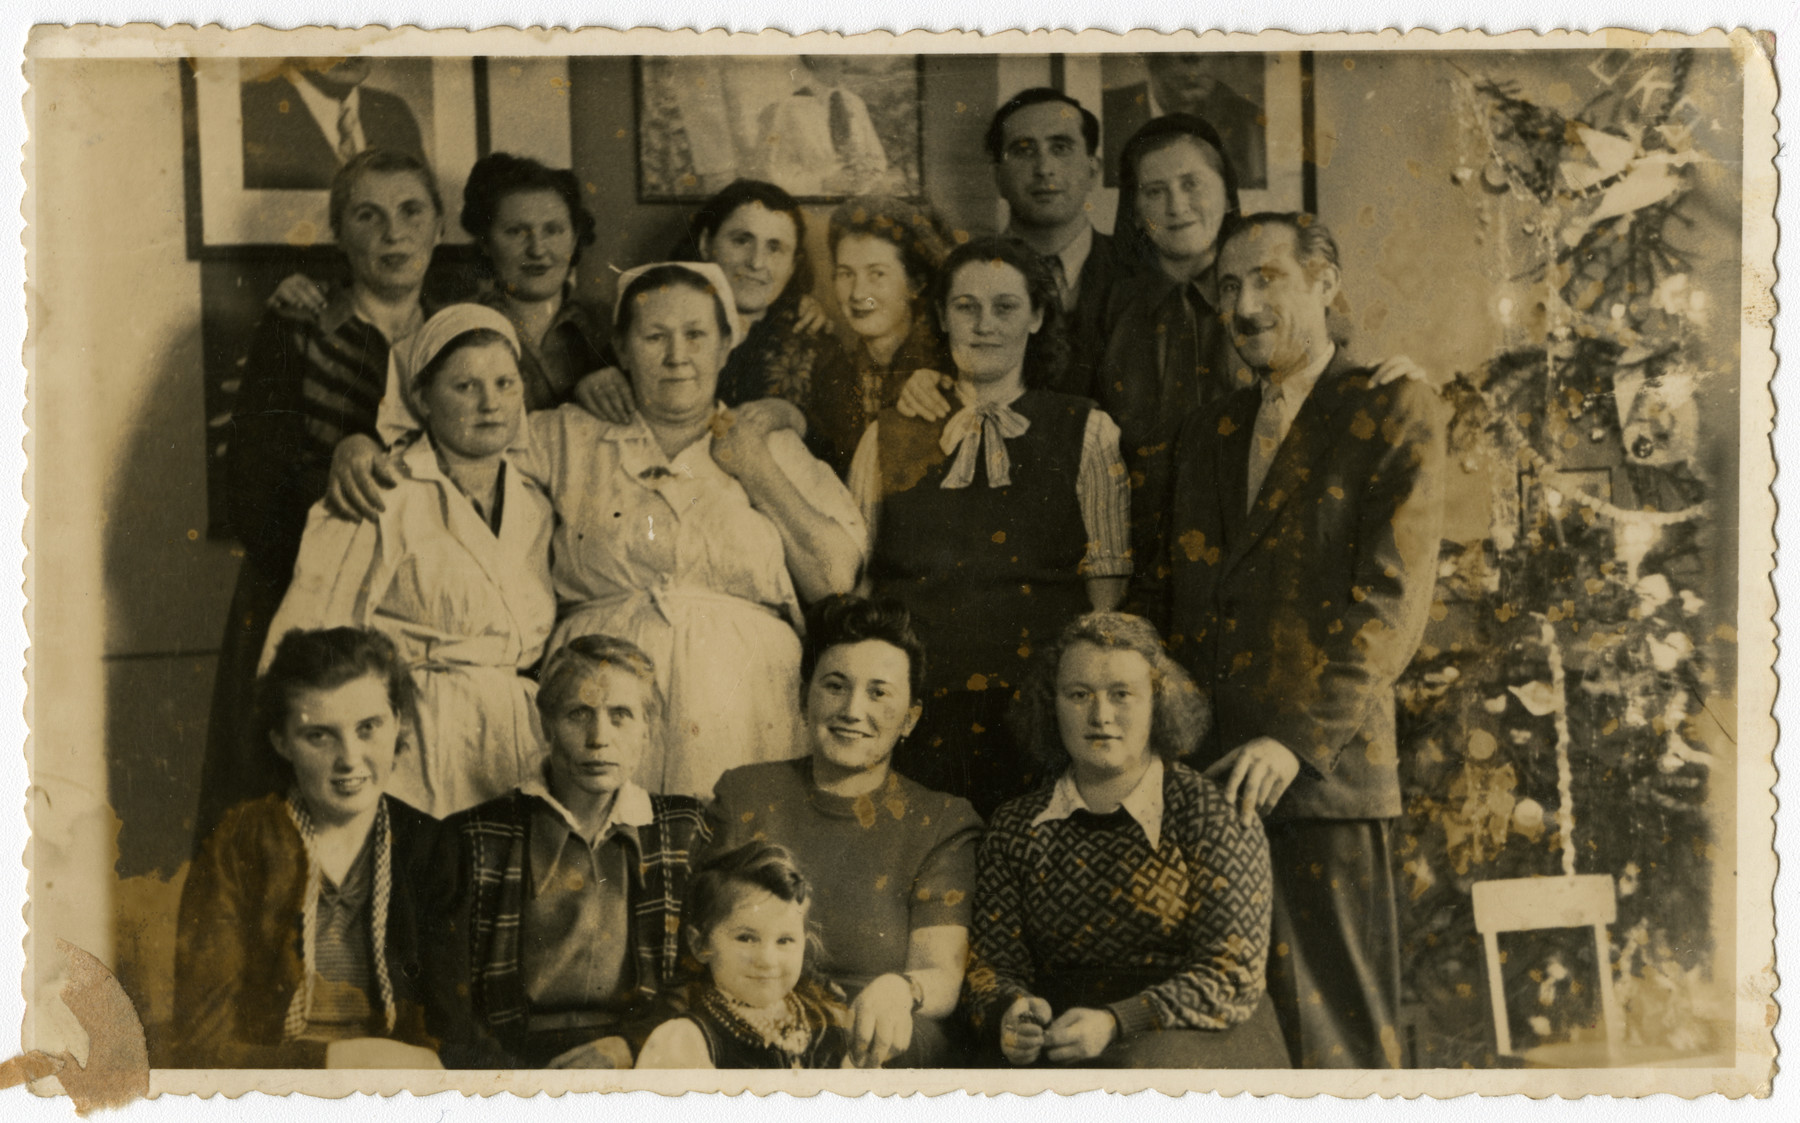 Staff members of a Jewish kindergarten in Szczecin after the war.   Pictured third from left in the front row is Klara Gorysznik-Meszel with her daughter Roza.